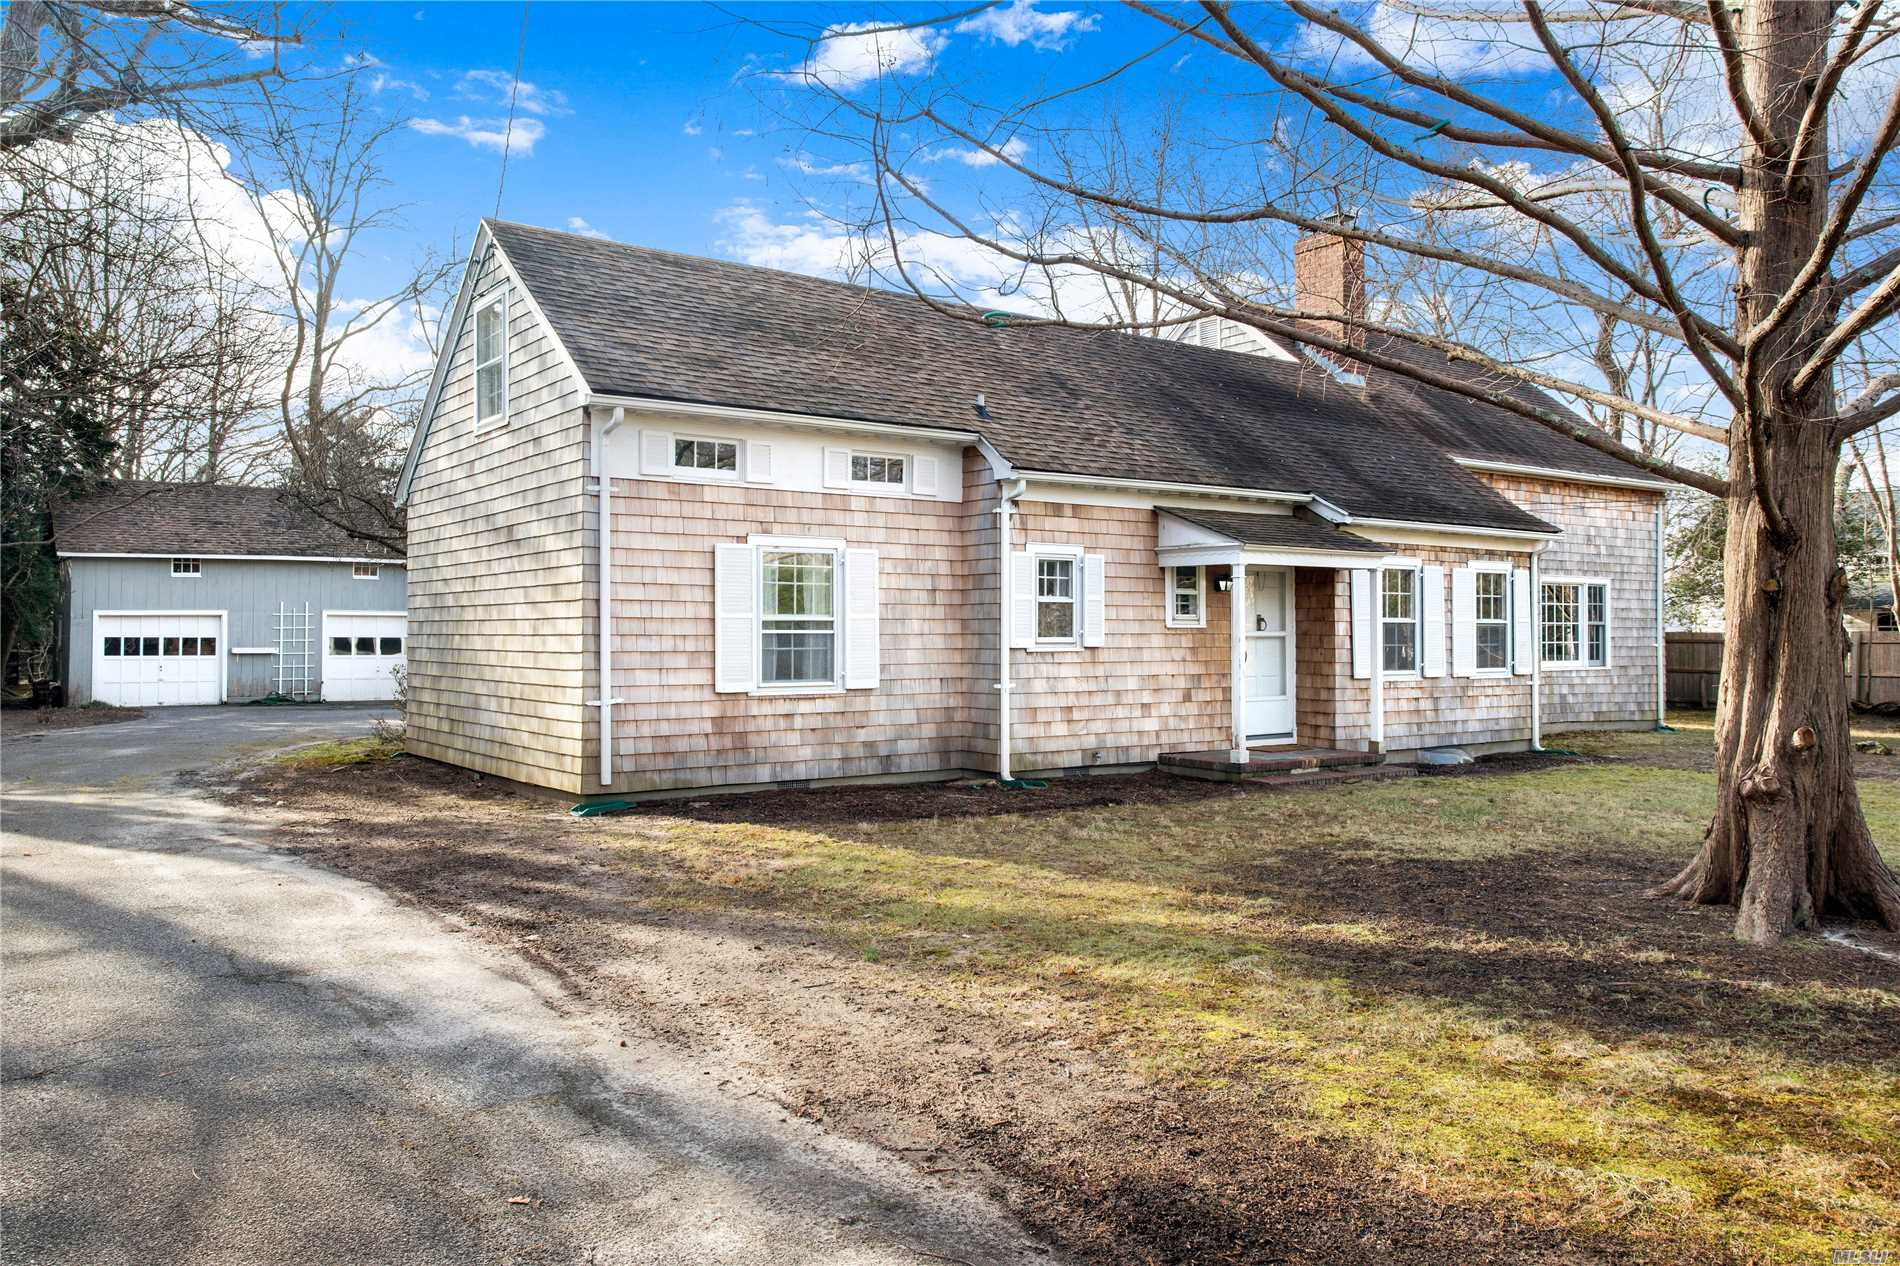 South Country Road, Remsenburg Is The Bucolic Setting For This 1, 944 Sf Cape. Three Bedrooms, 3 Baths, And An Upstairs Loft. Situated On 1 Acre, Just Minutes To The Bay, This Home Provides The Perfect Opportunity For A Renovation Or Rebuild. Low Taxes.